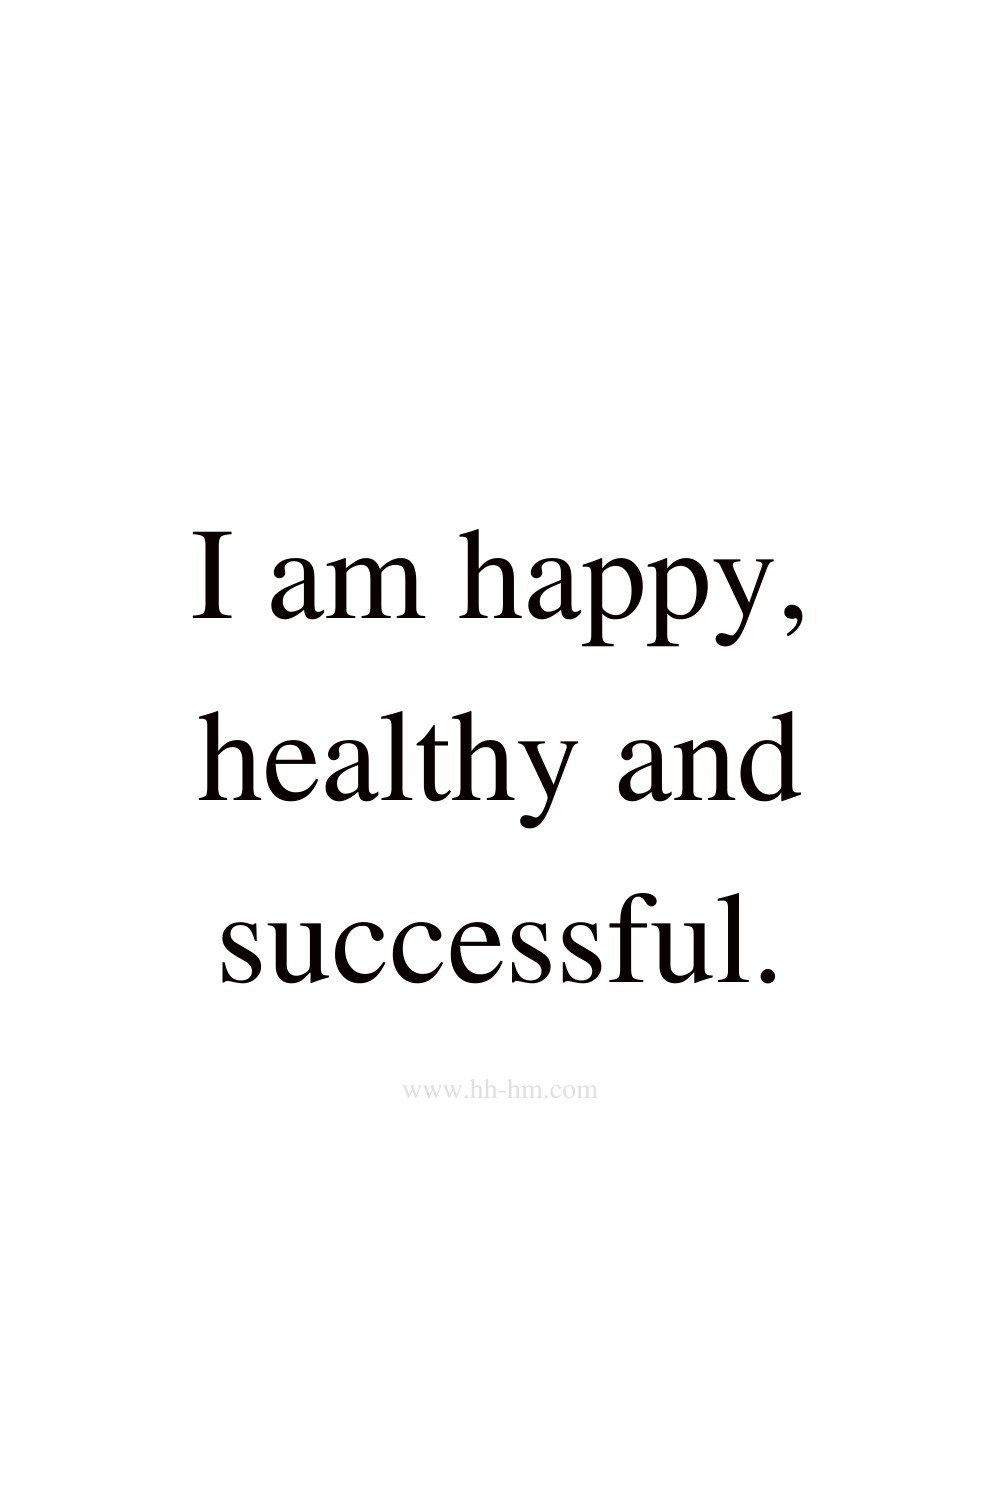 I am happy, healthy and successful - self love and self confidence morning affirmations